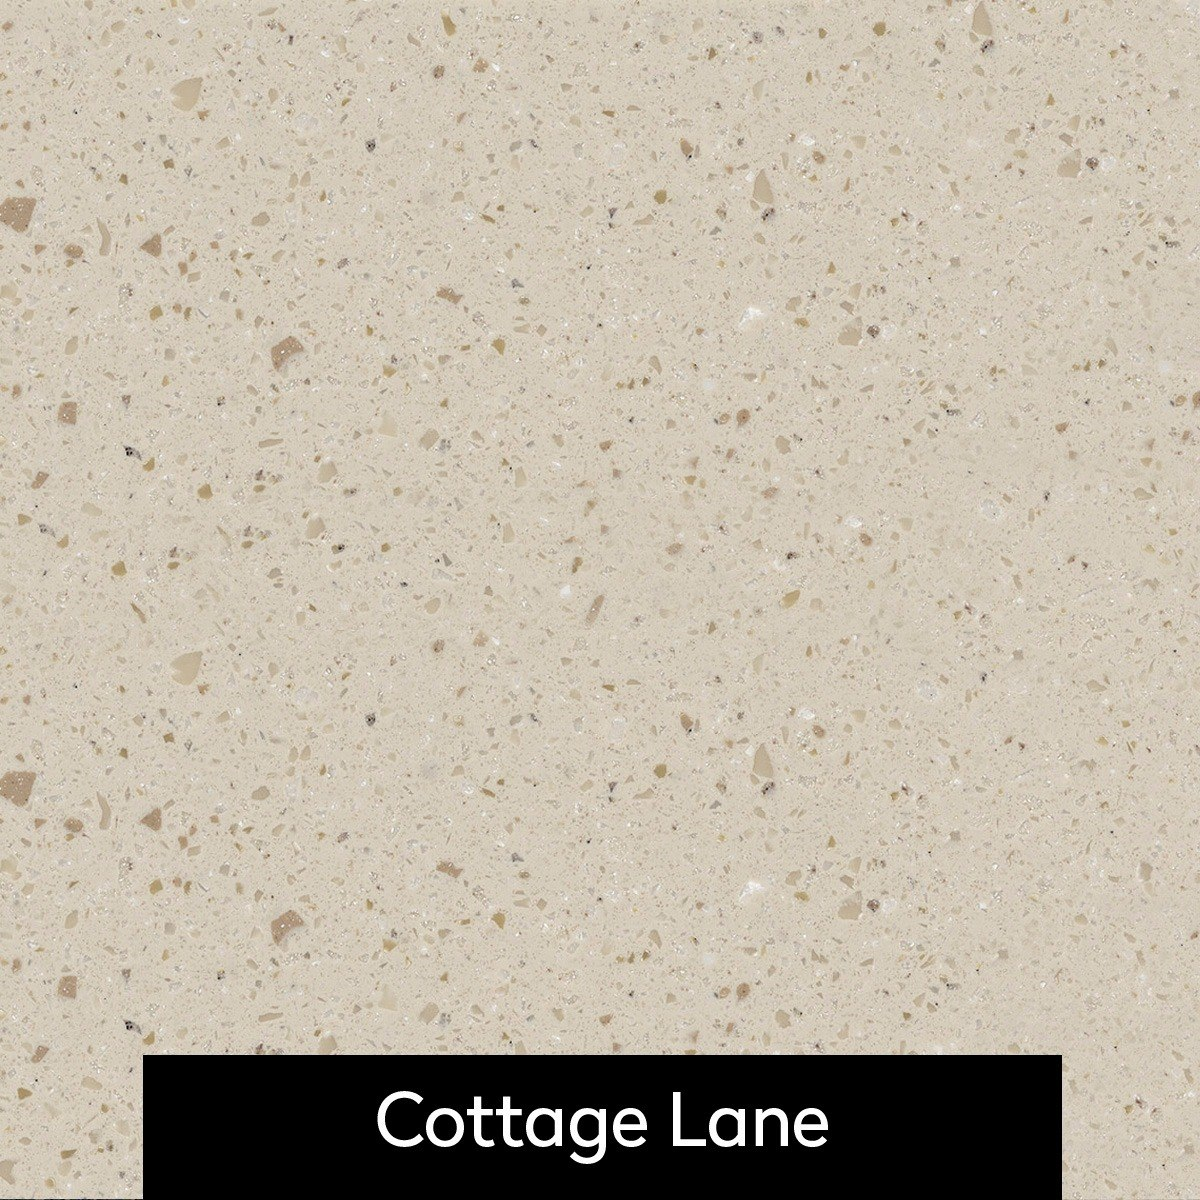 Corian Cottage Lane